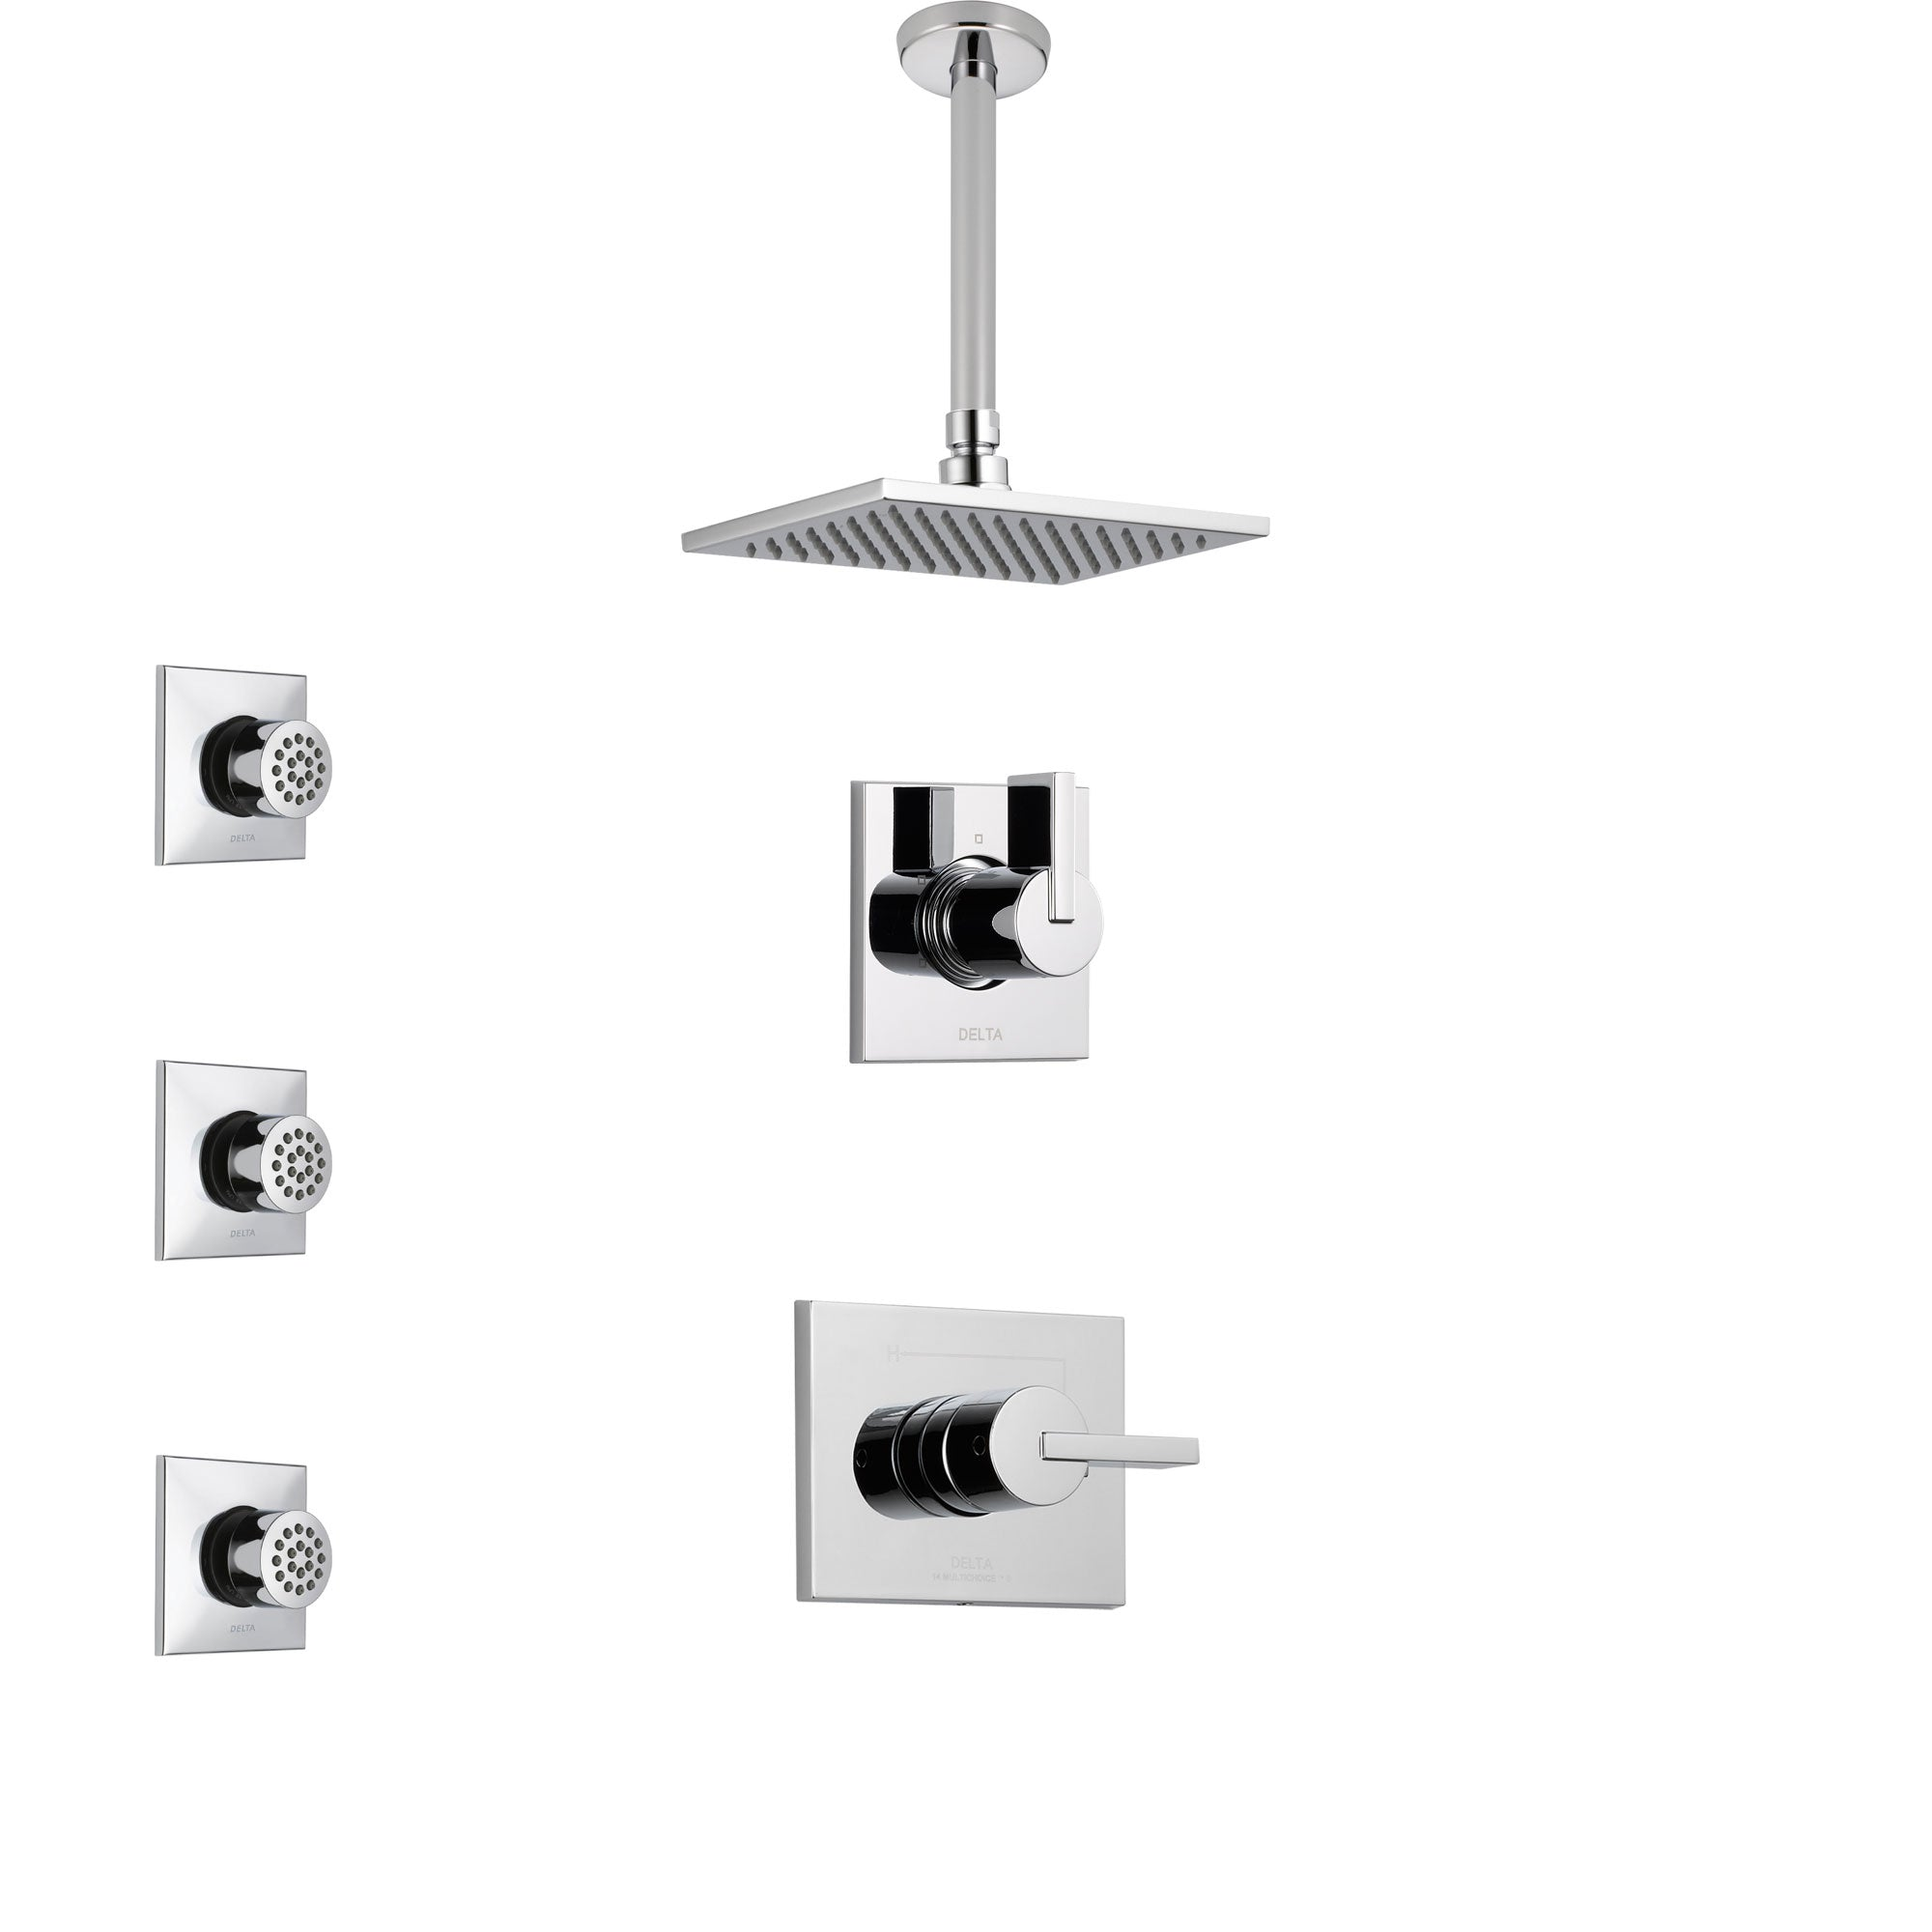 Delta Vero Chrome Finish Shower System with Control Handle, 3-Setting Diverter, Ceiling Mount Showerhead, and 3 Body Sprays SS14536